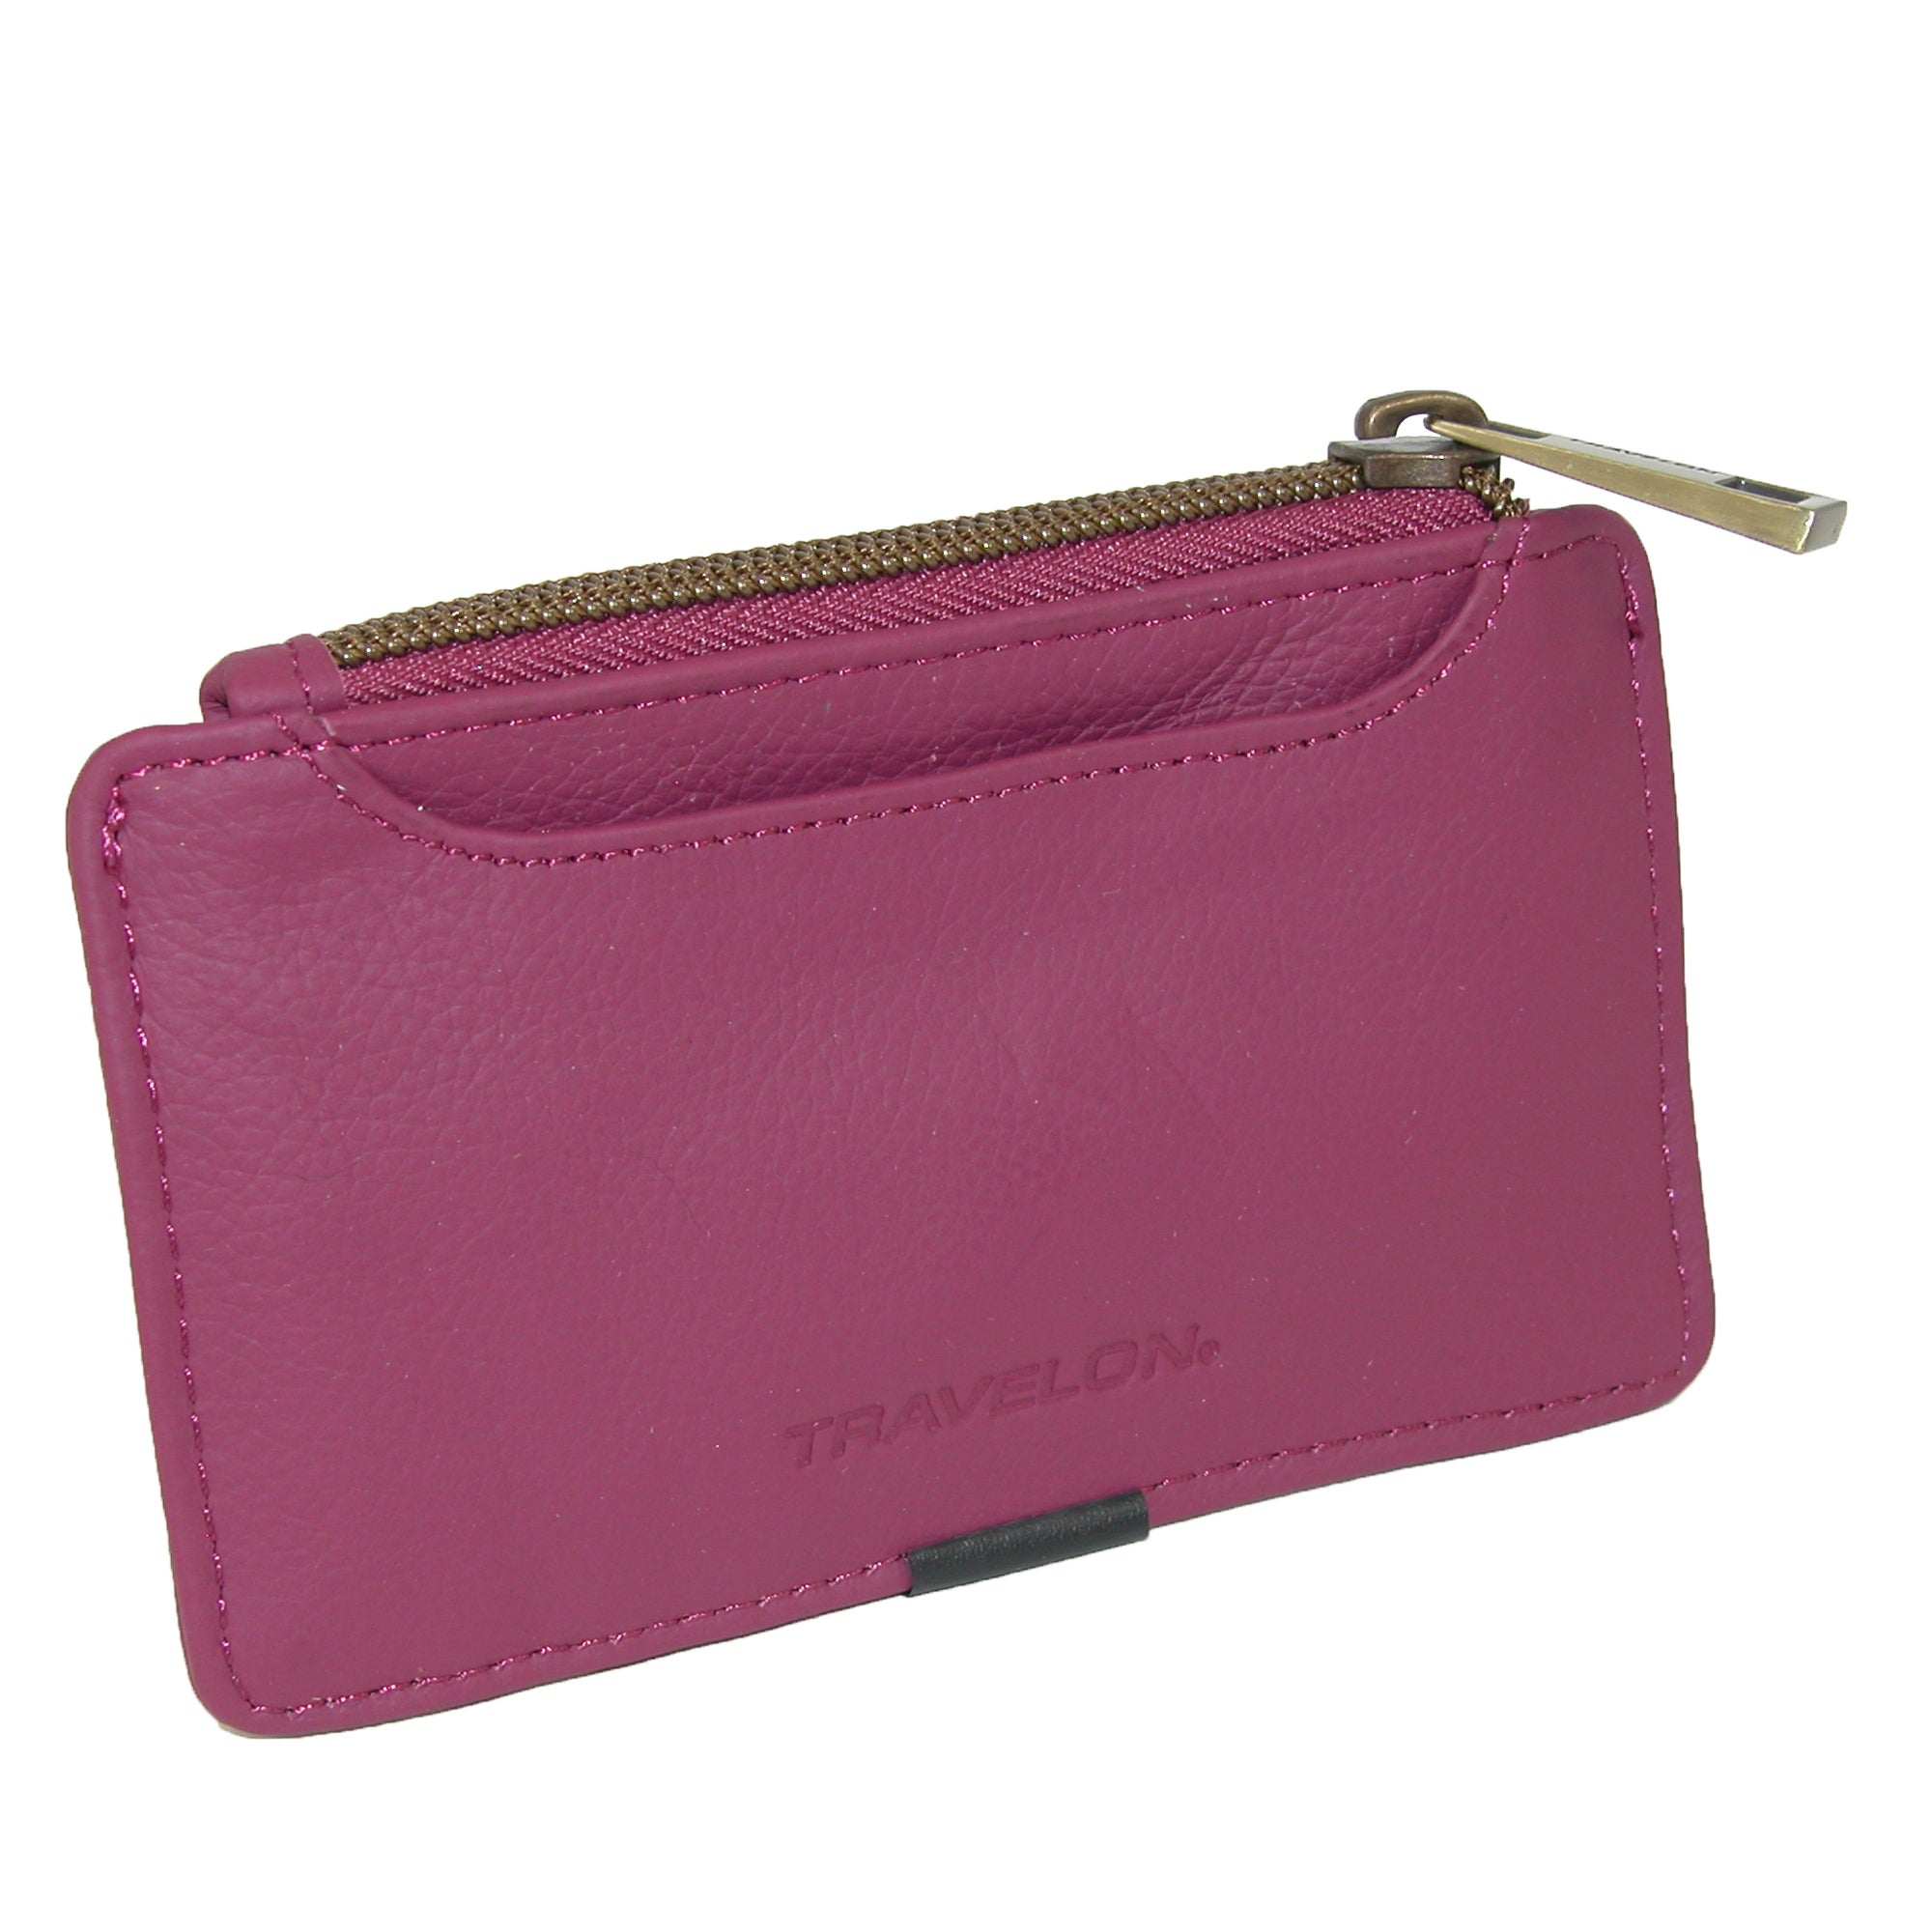 d1ac44793926 Travelon Women's Leather RFID Blocking ID and Card Case Wallet